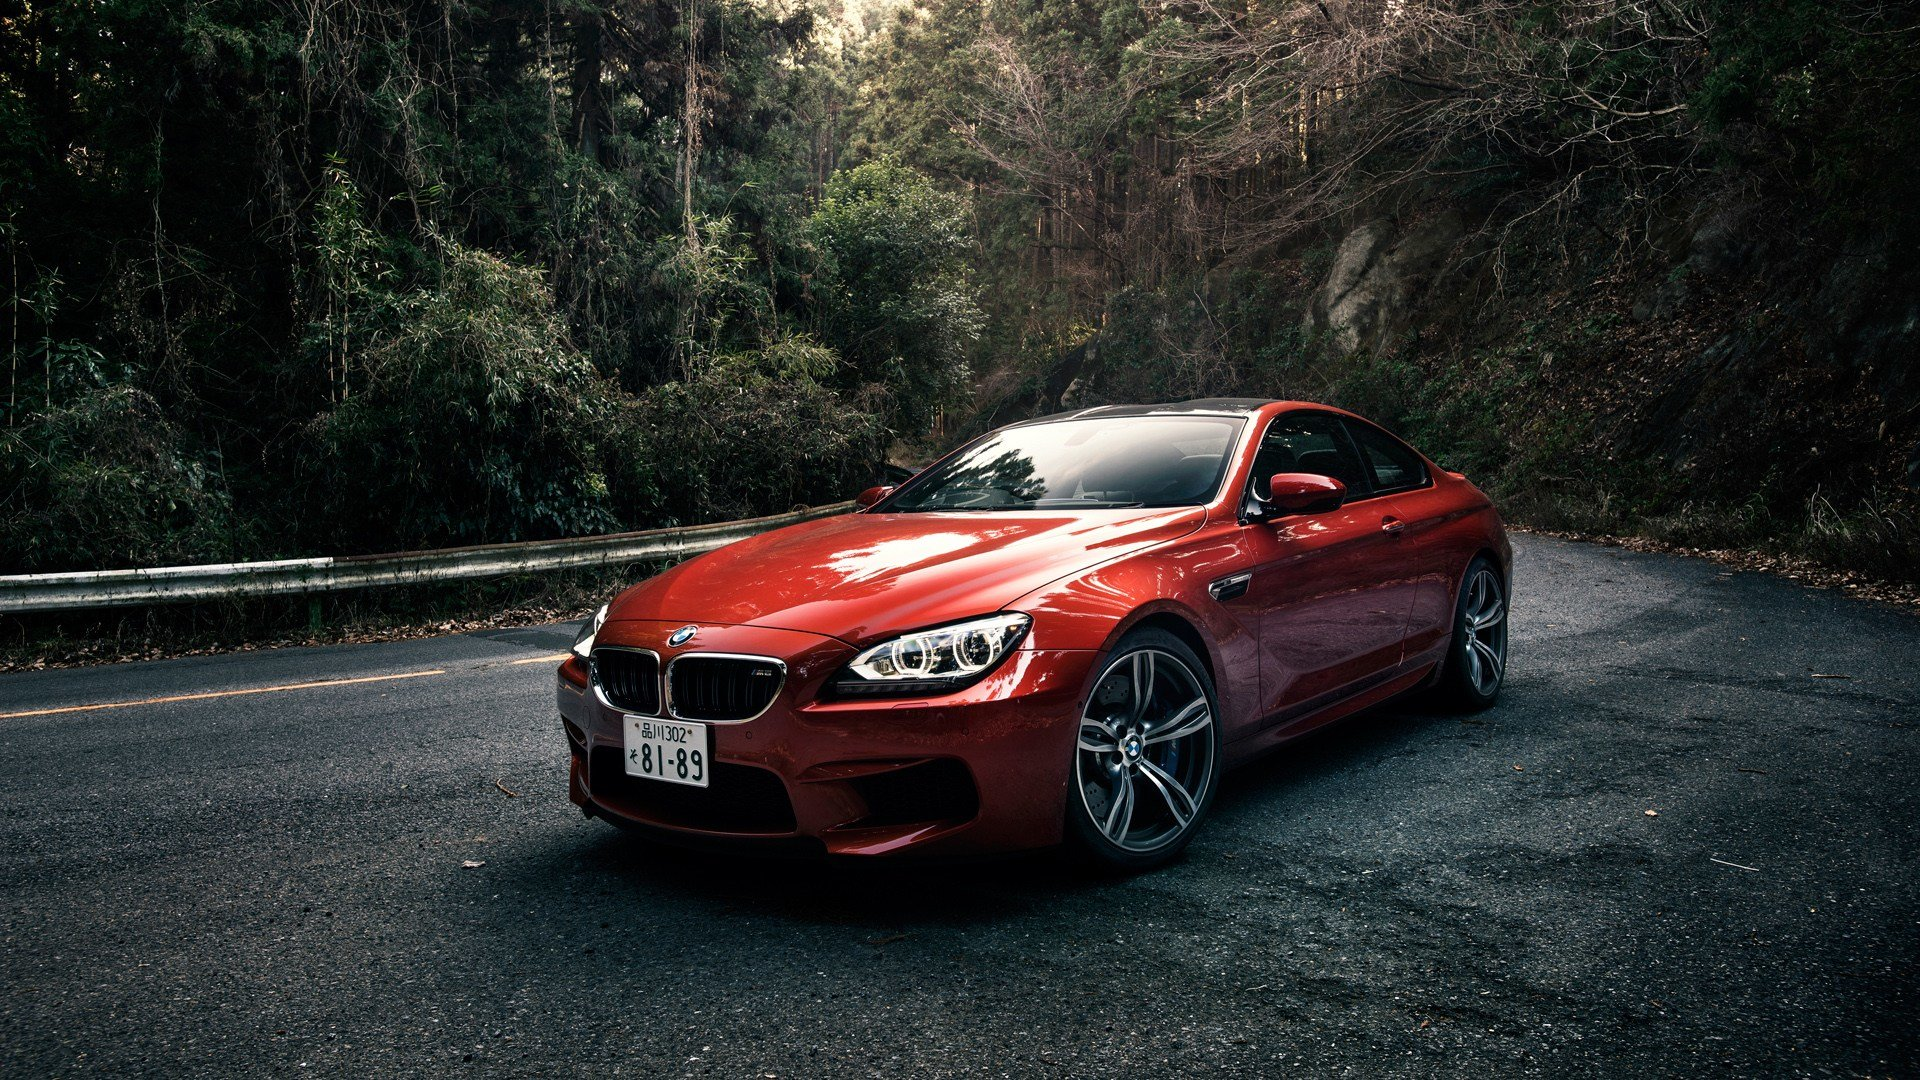 New Bmw M6 Wallpapers High Quality Download Free On This Month